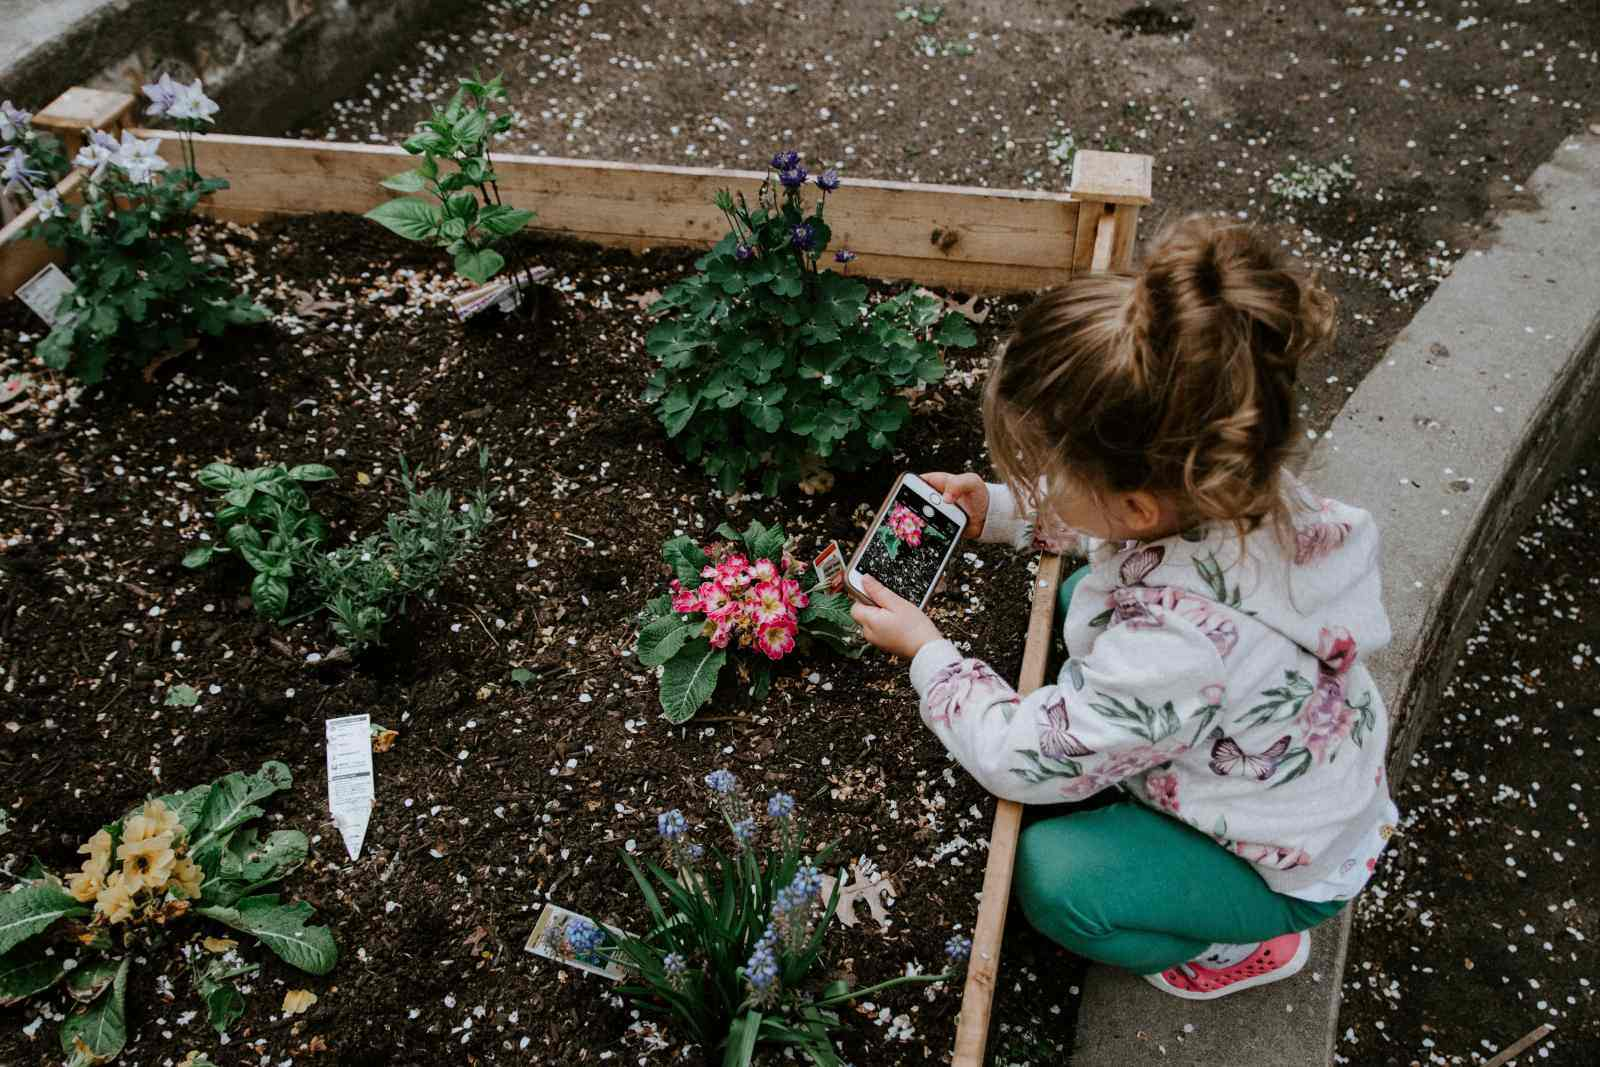 Young child crouched over a box garden taking a photo of flowers with a phone. Photo by Kelly Sikkema on Unsplash.